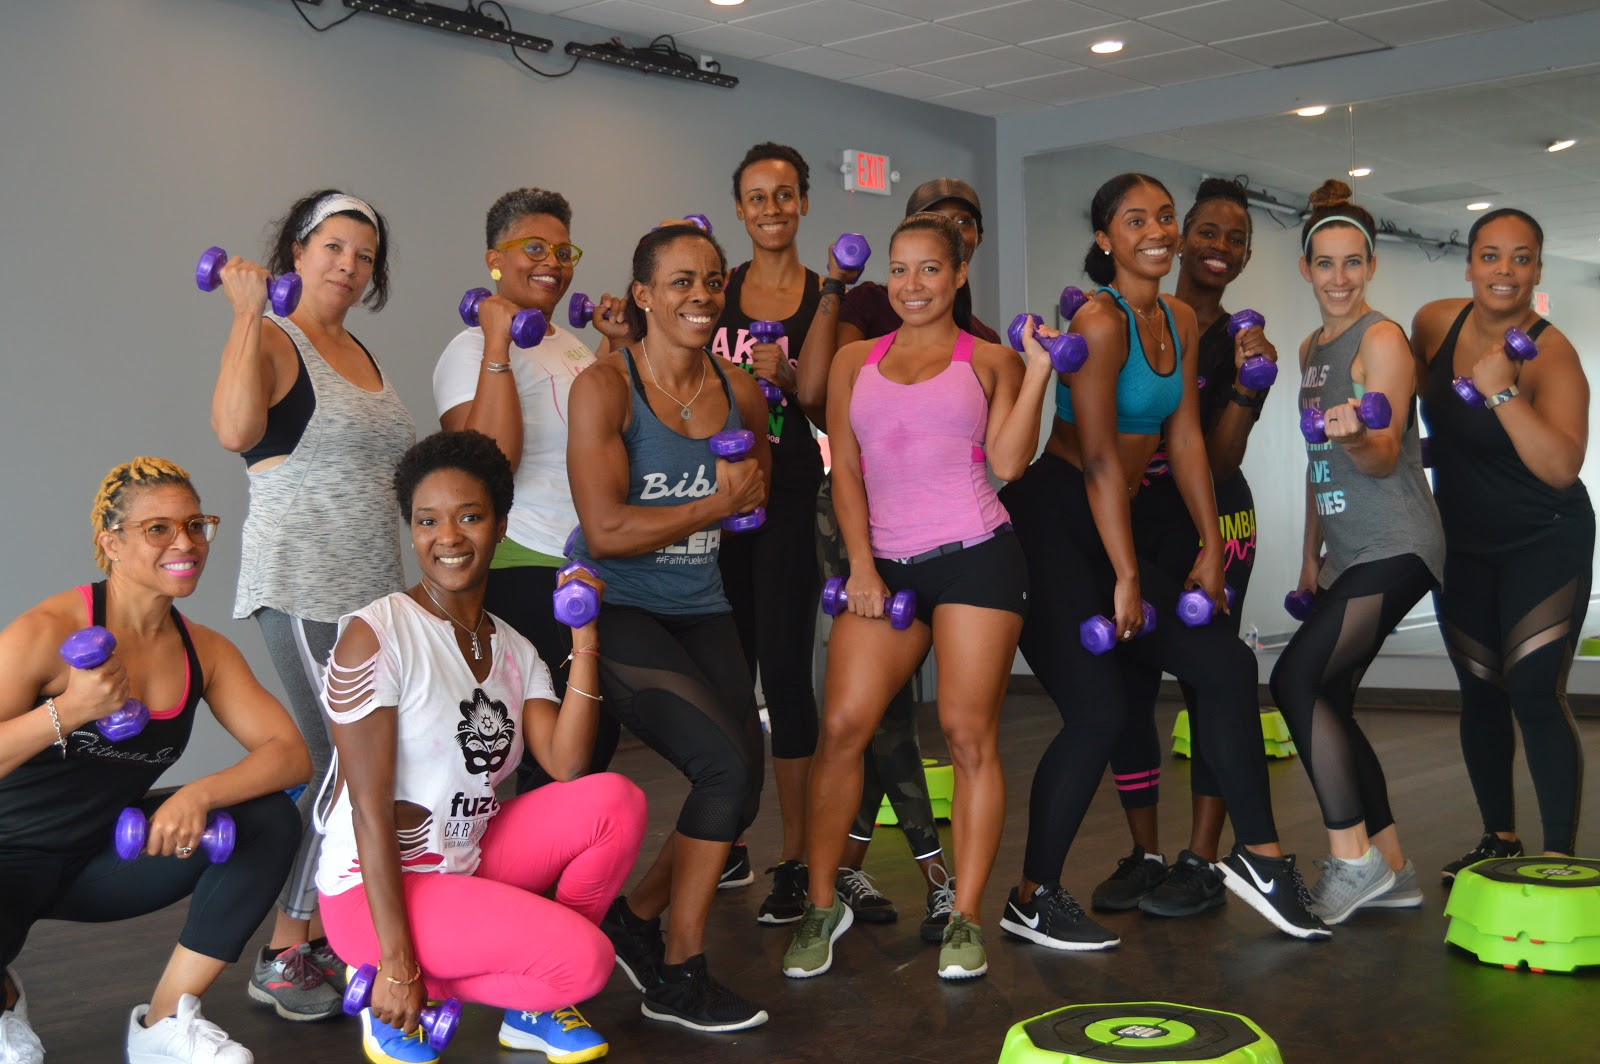 Pro Tip: Probably don't take this class after a 7 mile run. Speaking from experience. DO take this class if you want an amazing arms & booty workout.  [Photo via Flecks of Lex]